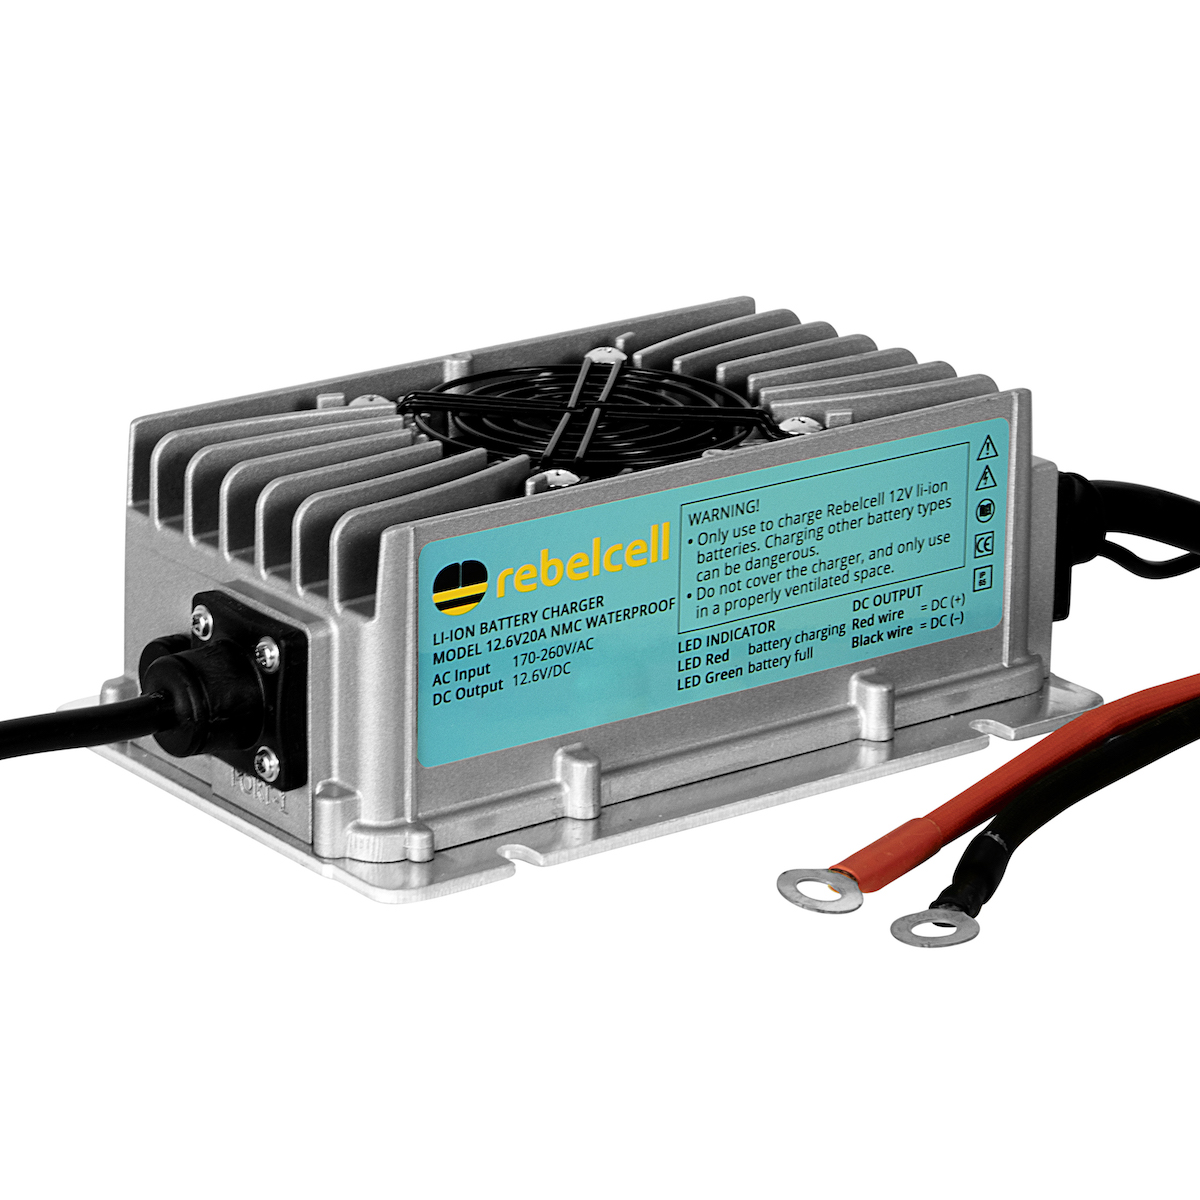 NEW! Waterproof battery chargers